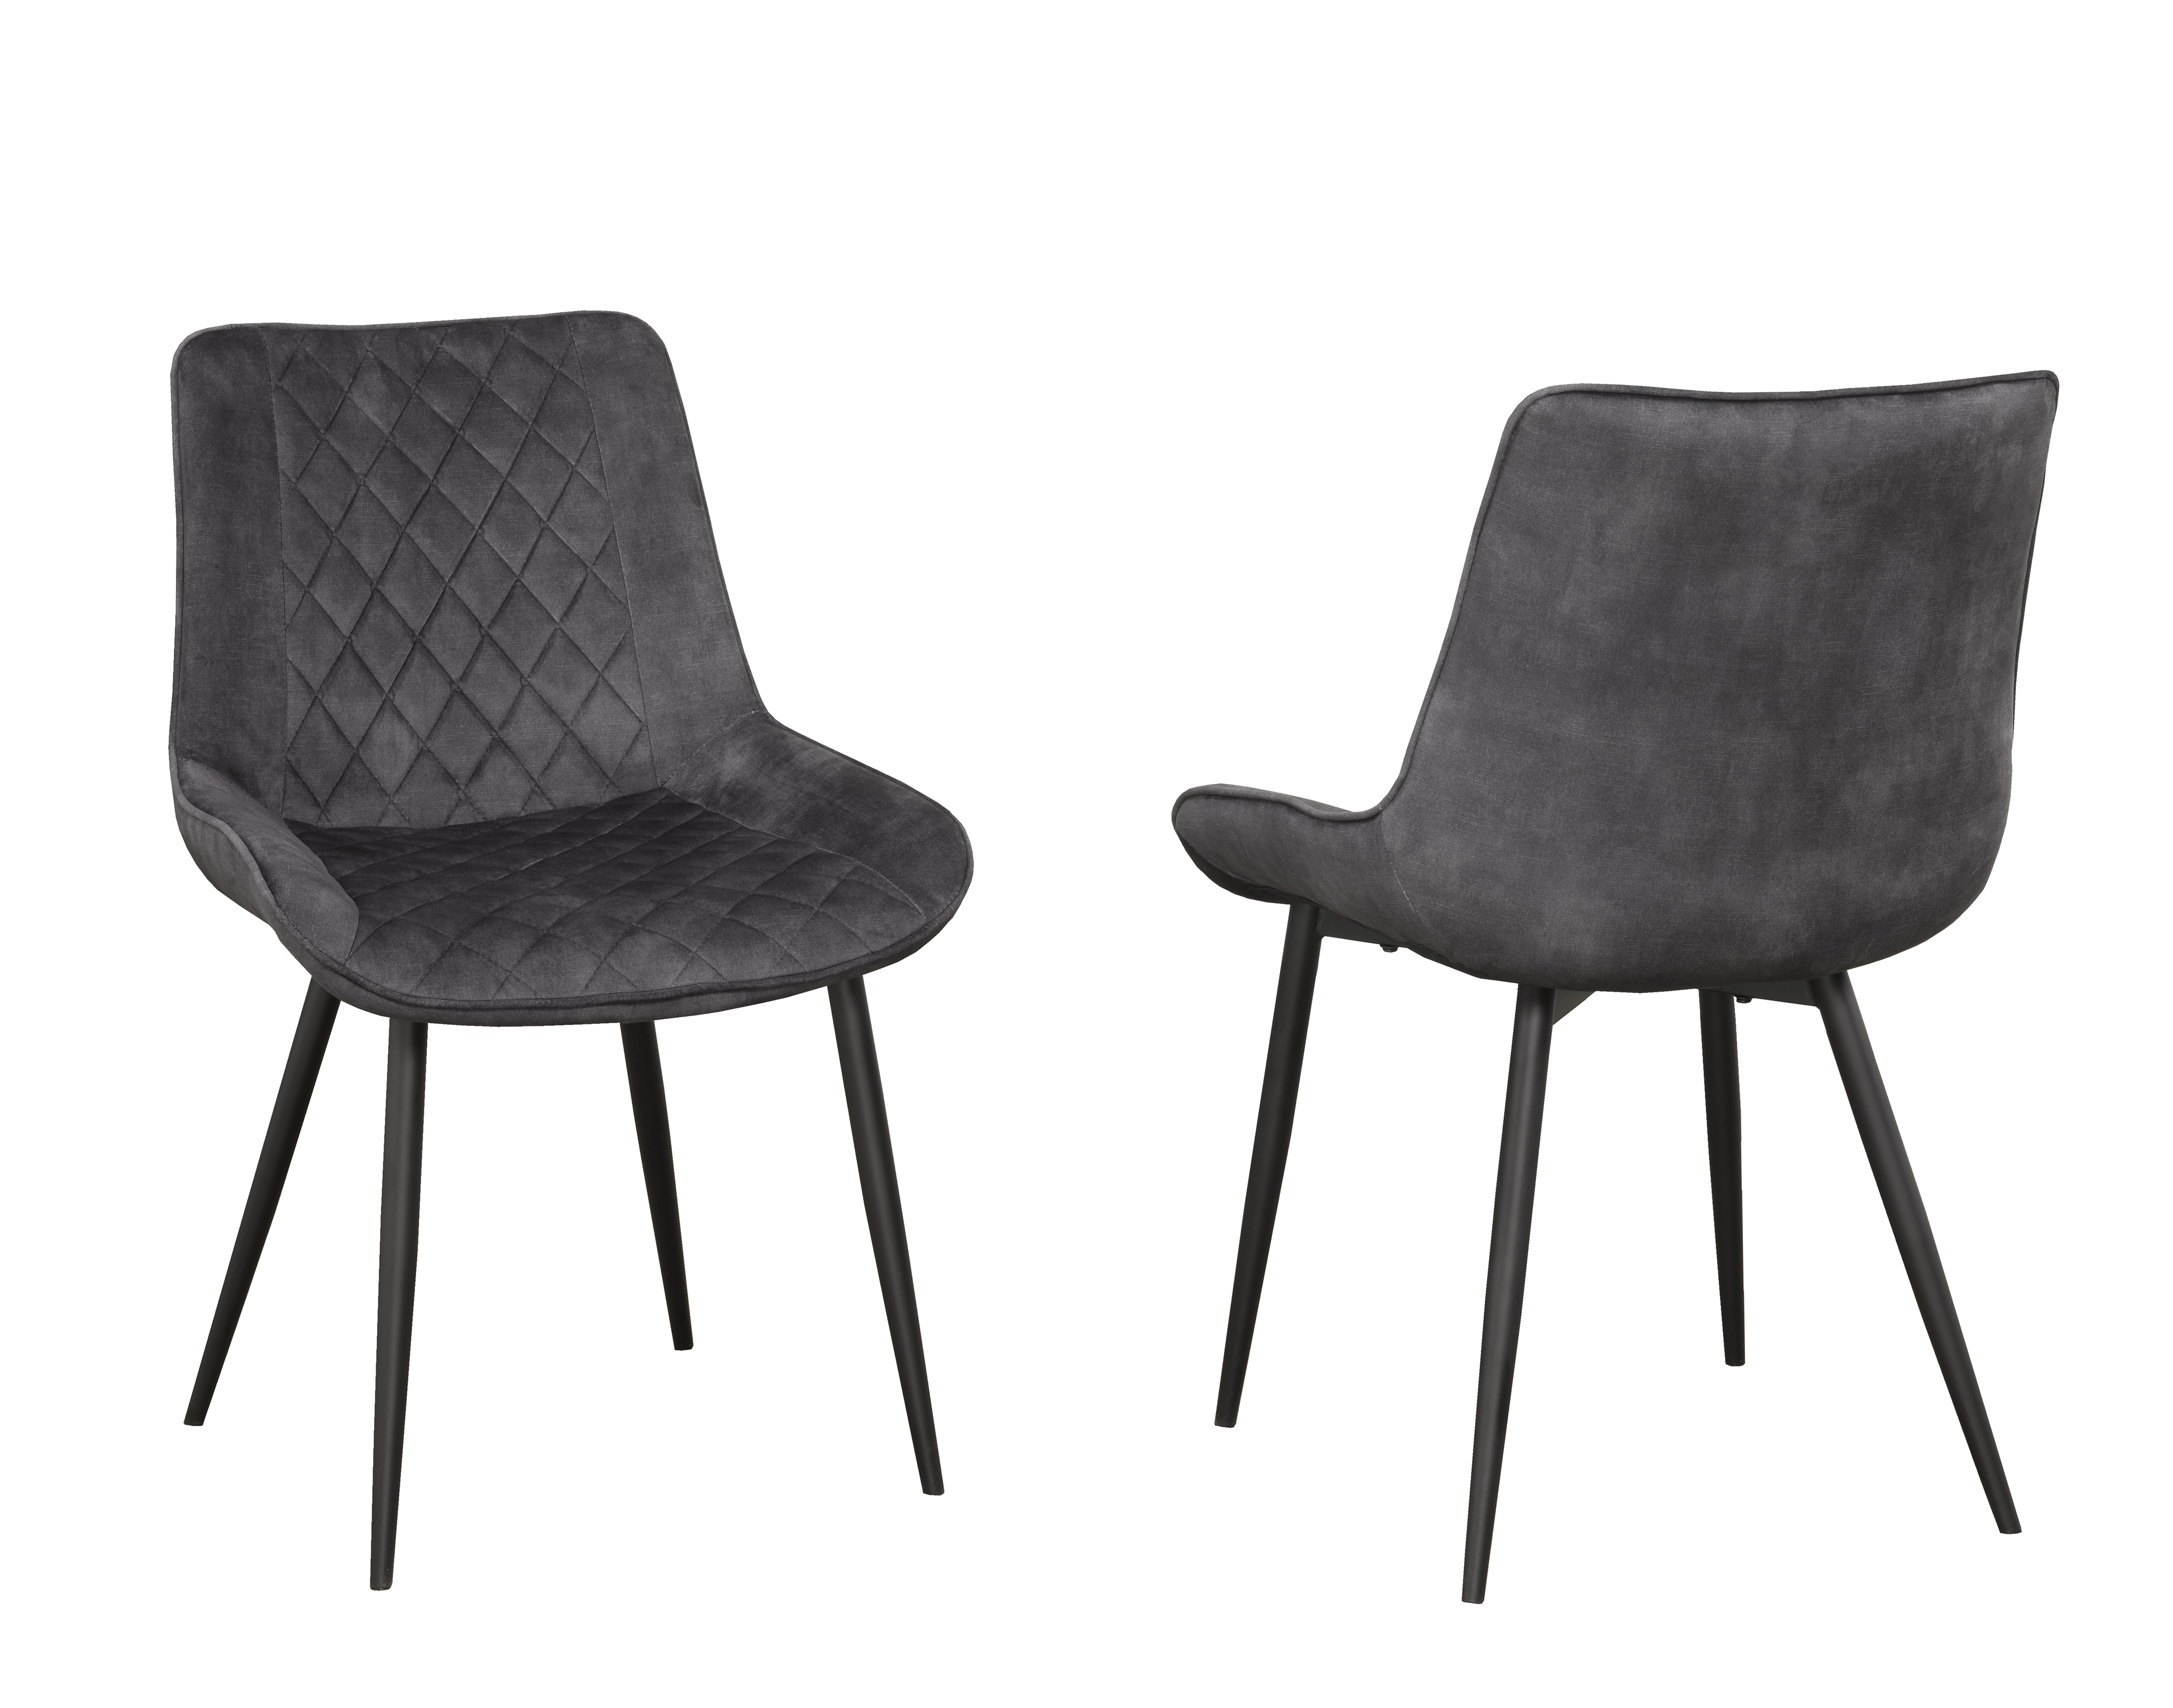 FABIAN DINING CHAIR, SET OF 2